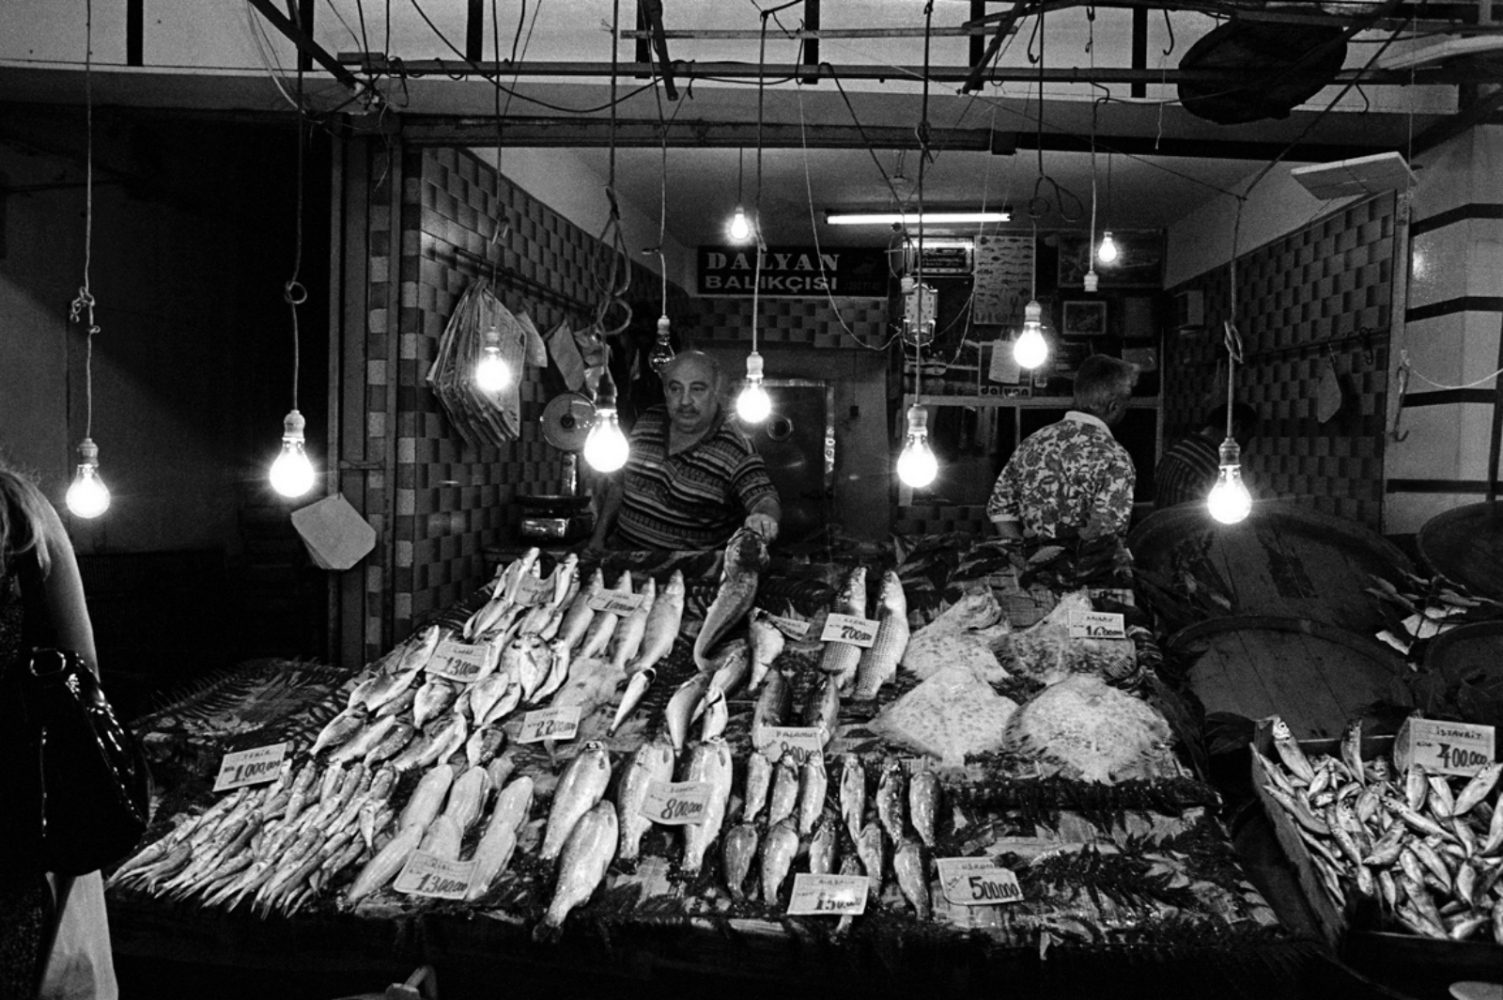 Fish and Lightbulbs, Turkey, Summer 1997